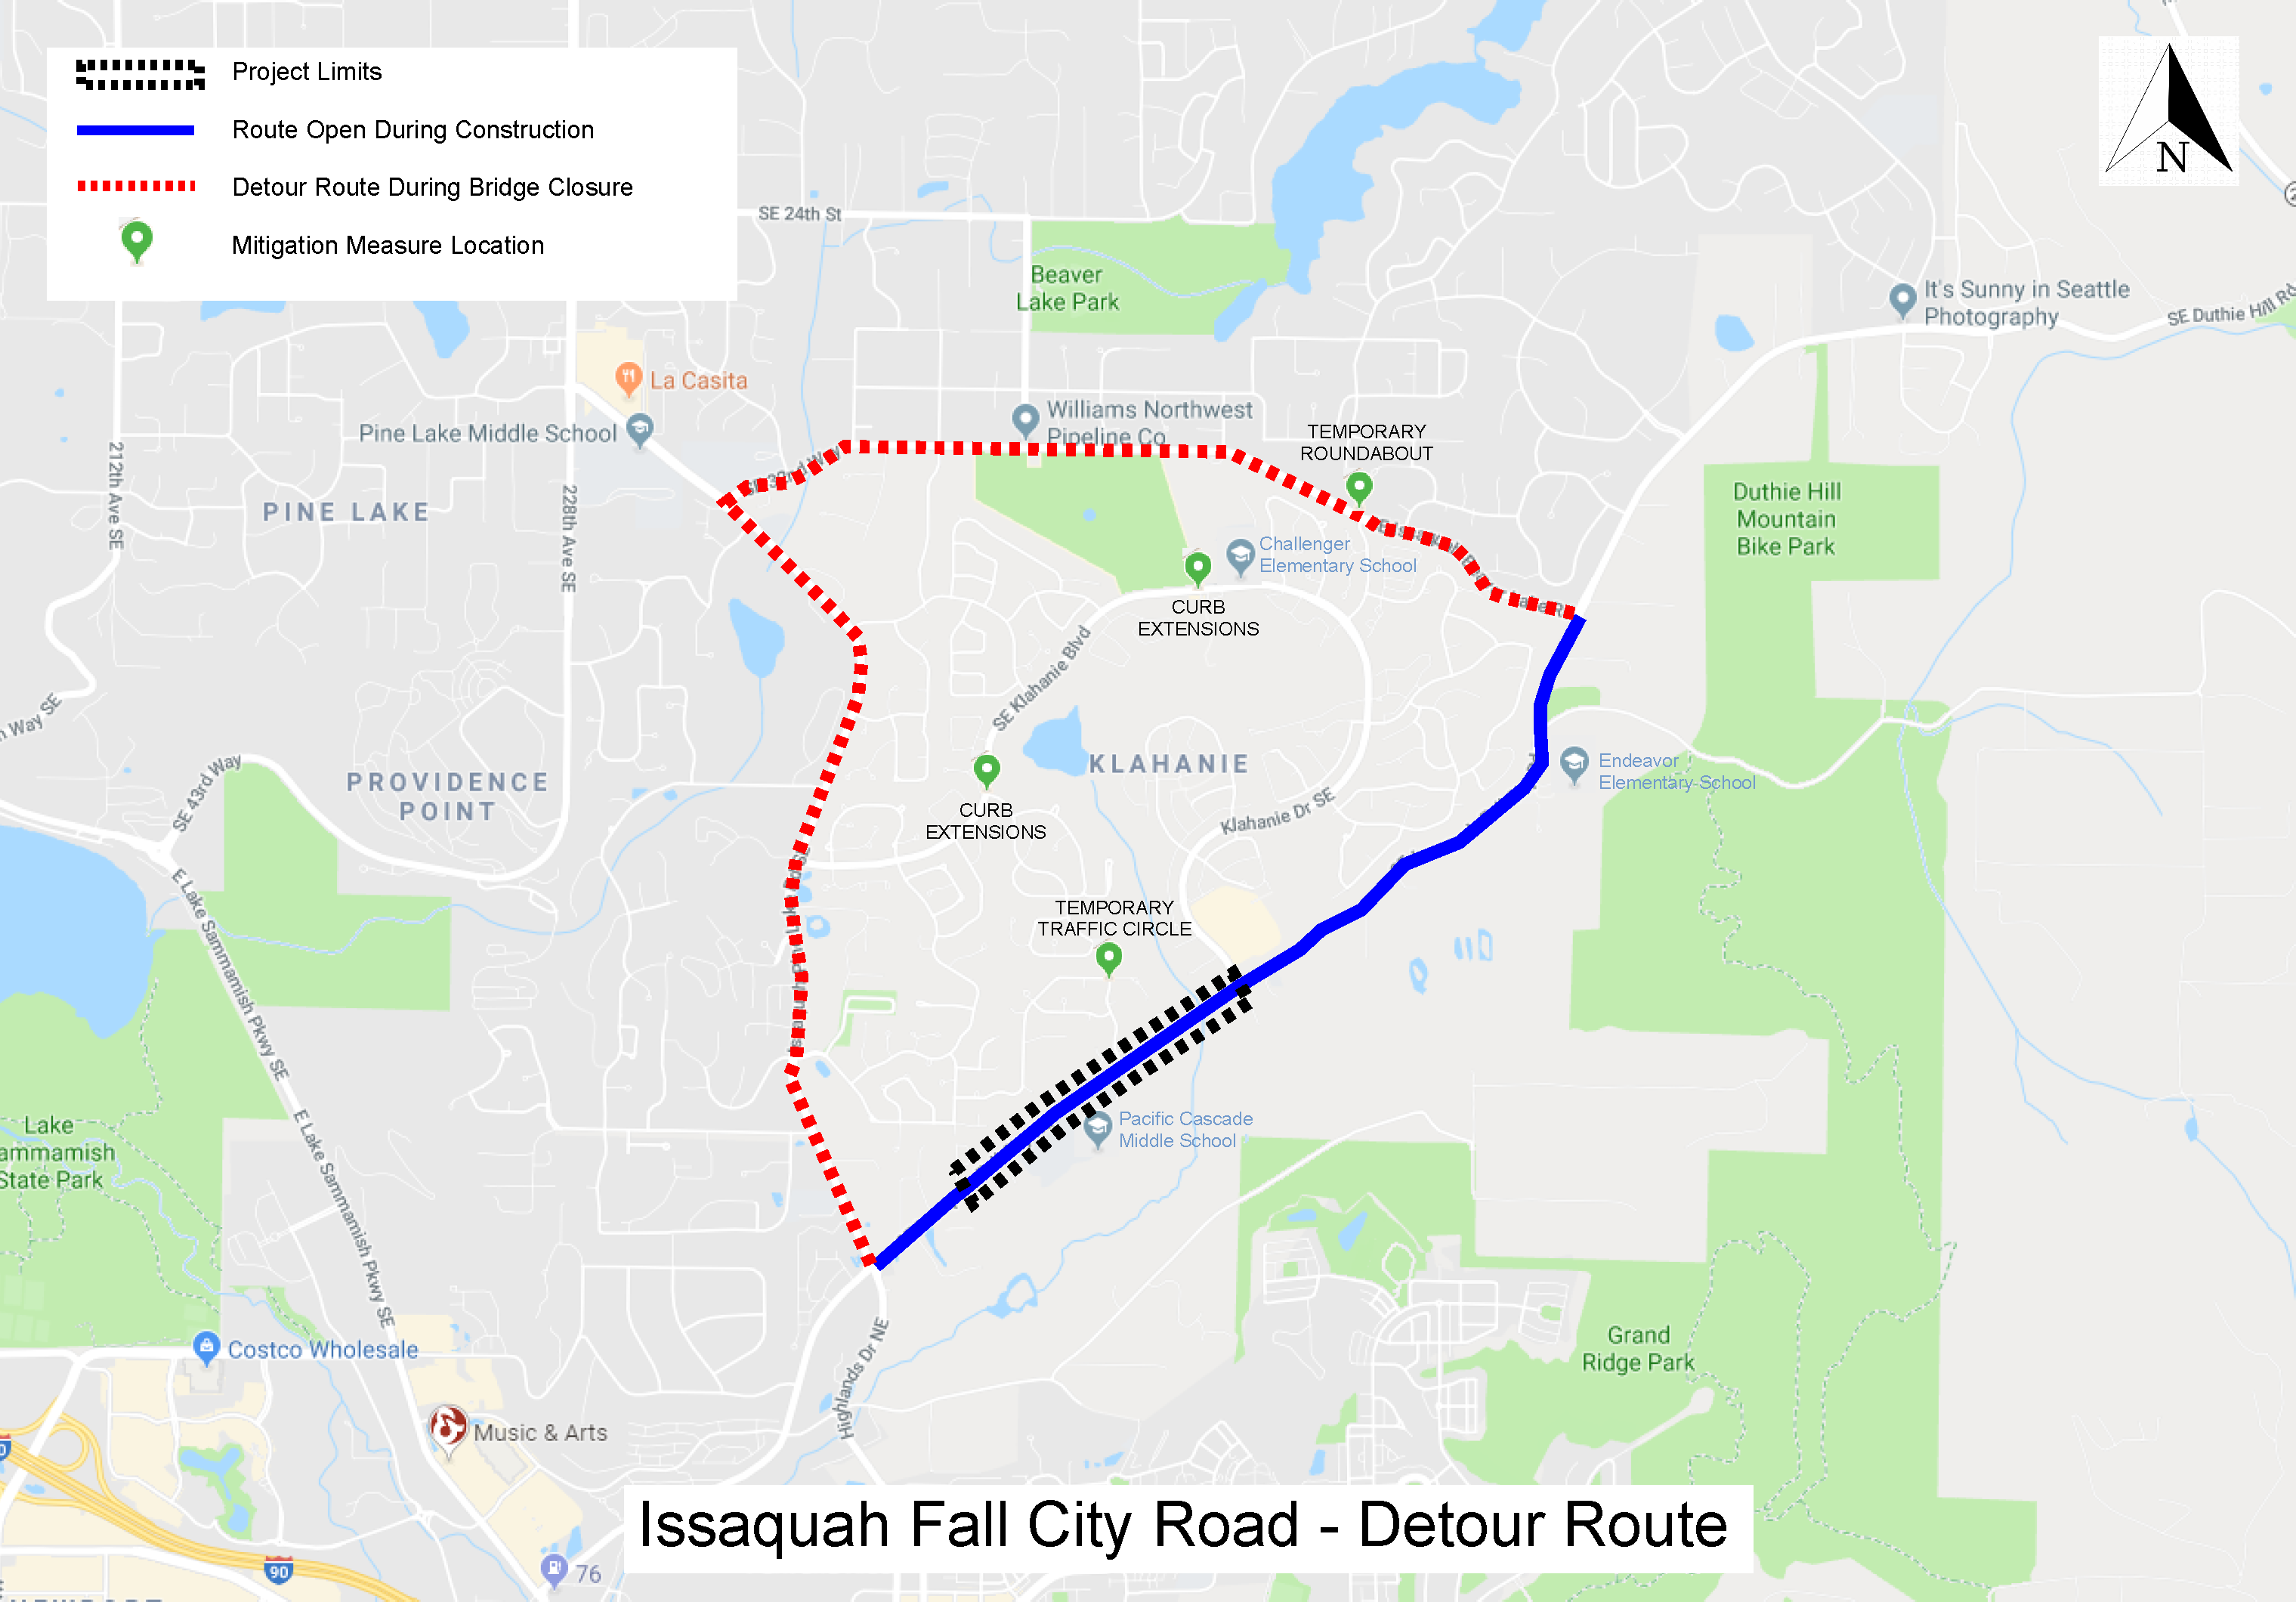 Issaquah Fall City Road - Detour Route. Starting on Monday, April 20th, the roadway closure will be between 245th Lane SE and Klahanie Blvd.